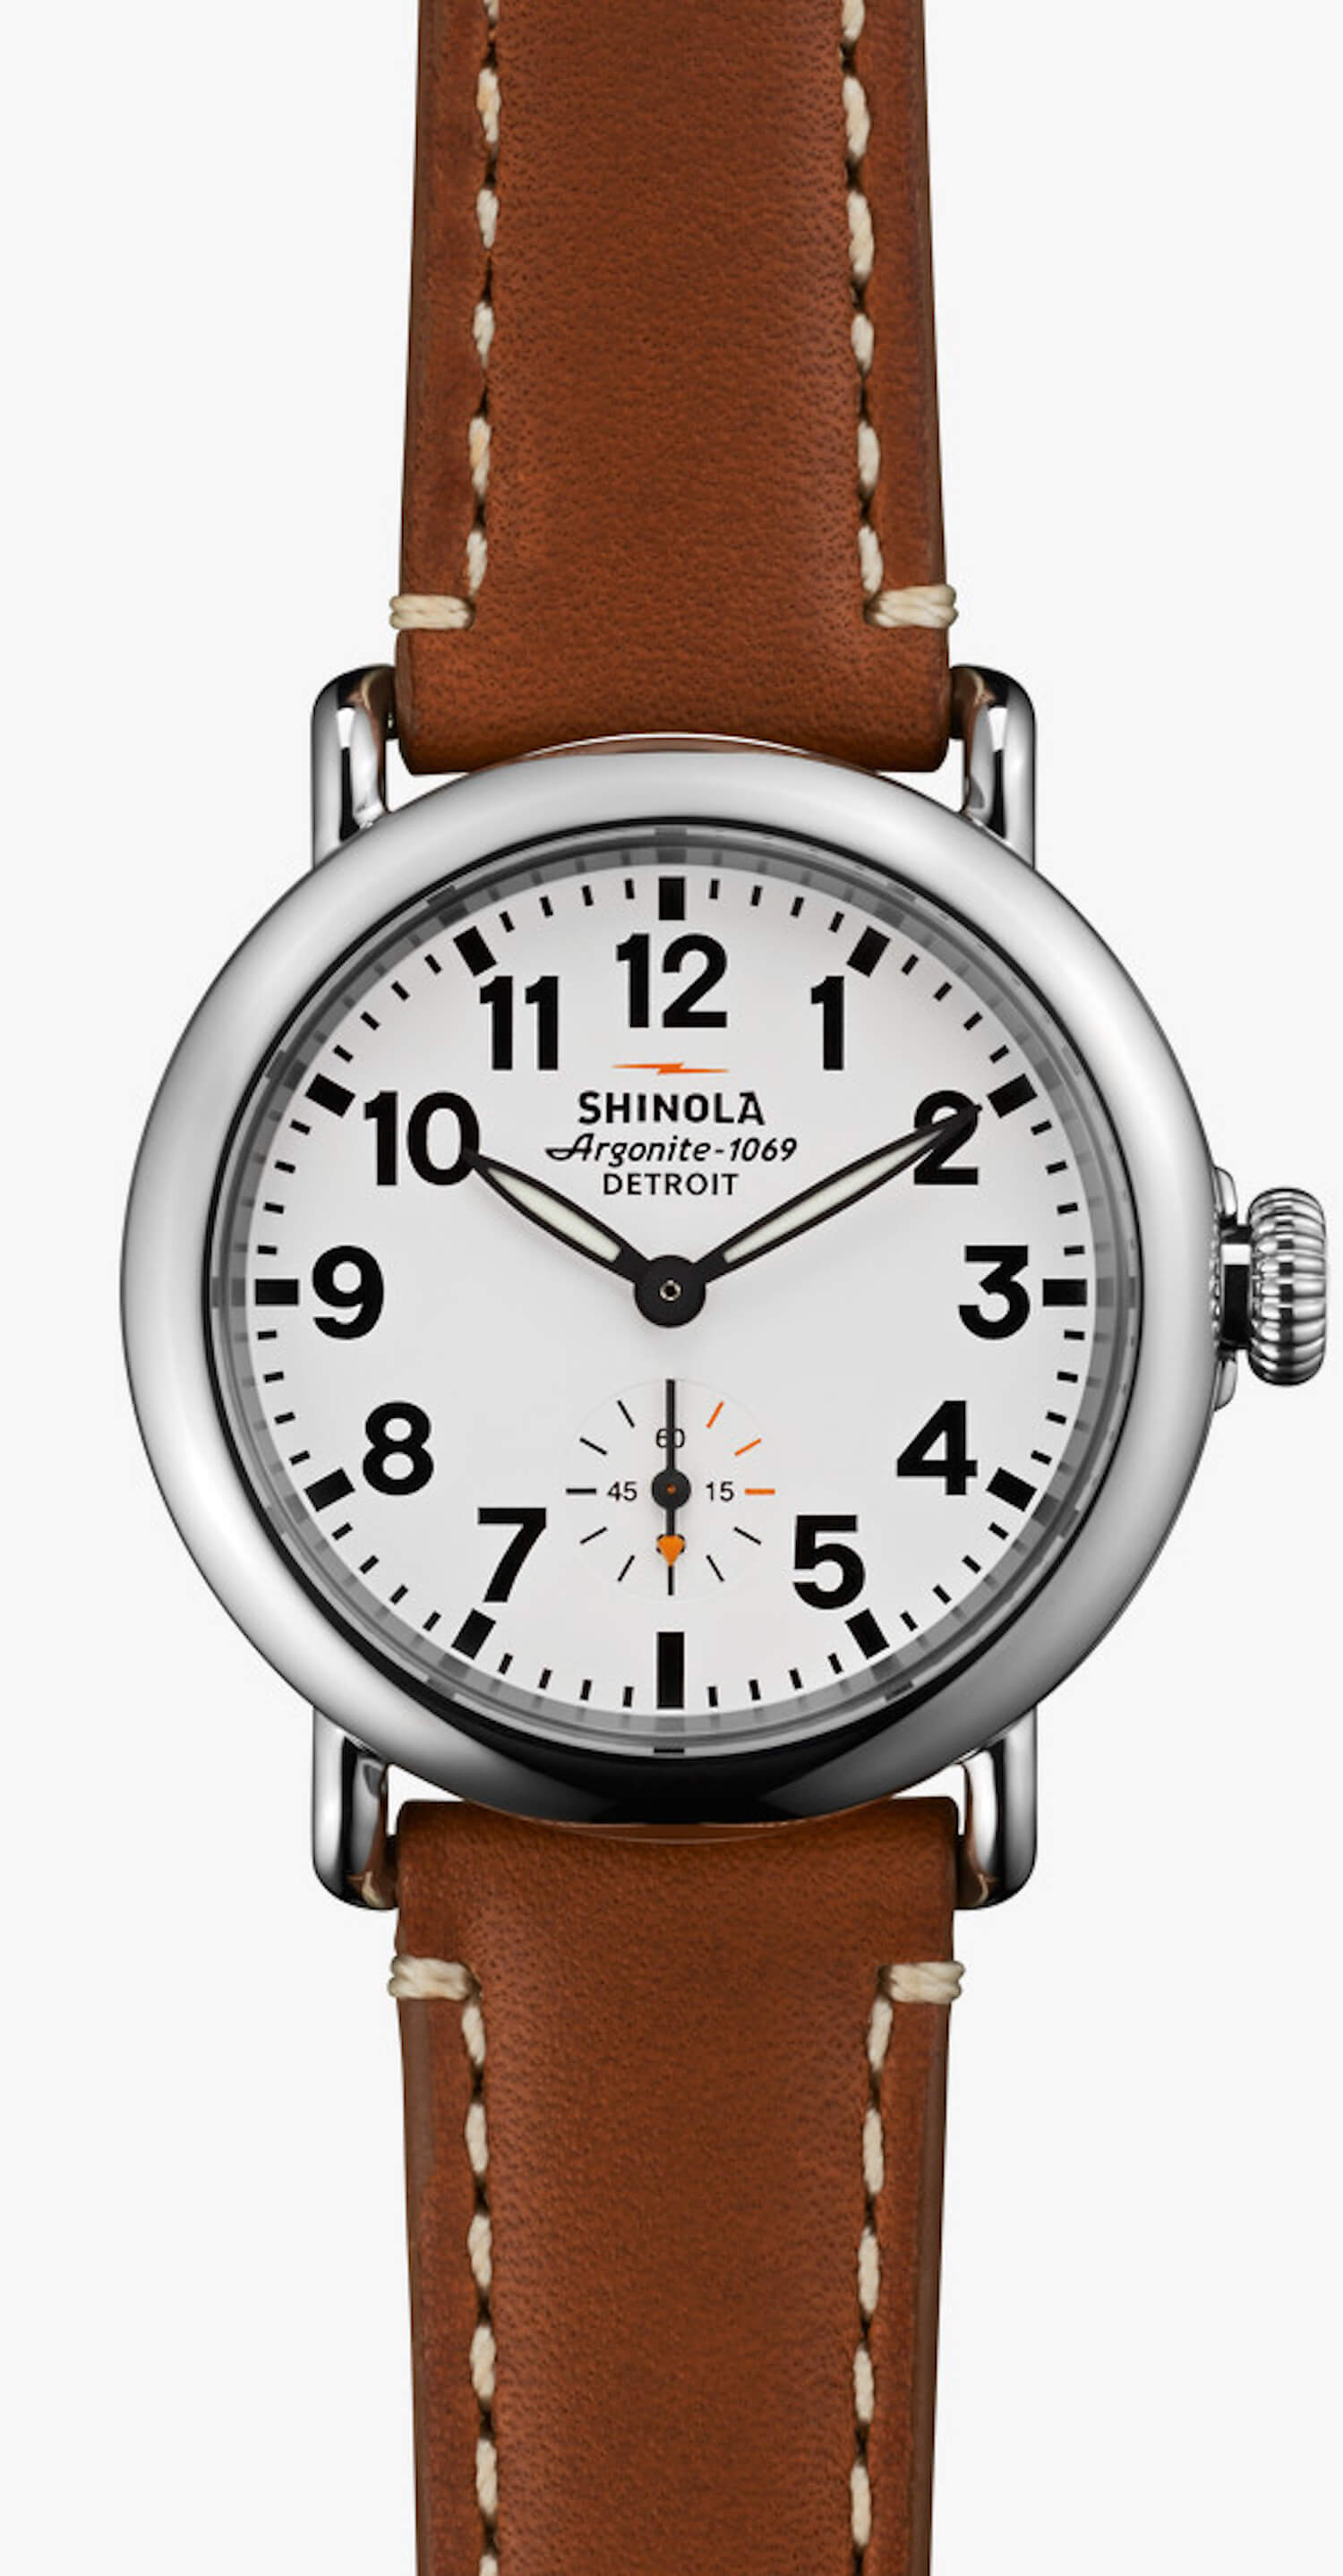 est living karina calvert jones gift guide shinola